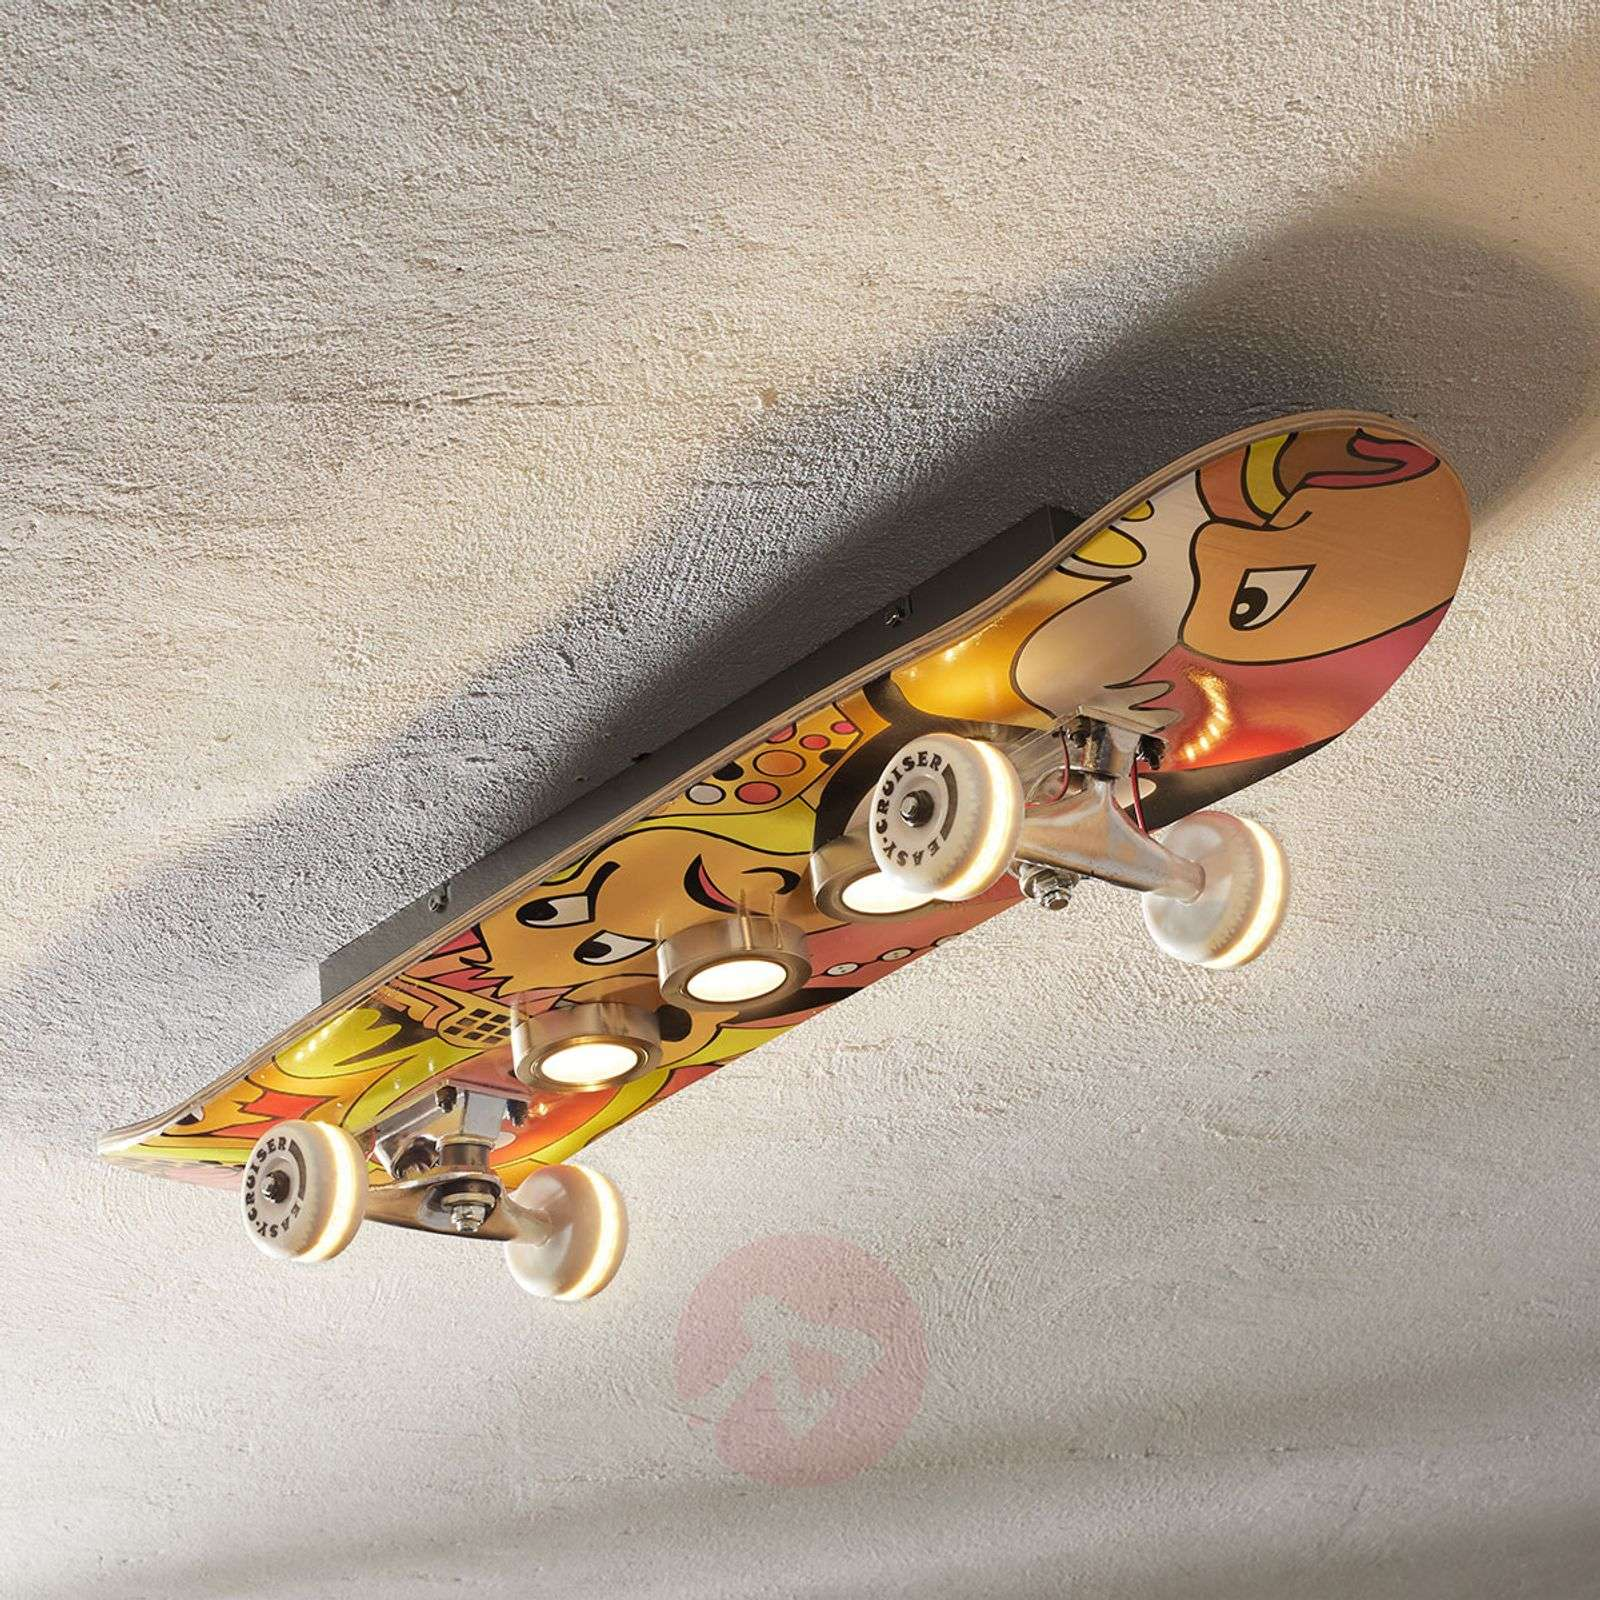 Plafonnier LED Easy Cruiser en skateboard-3025316-01